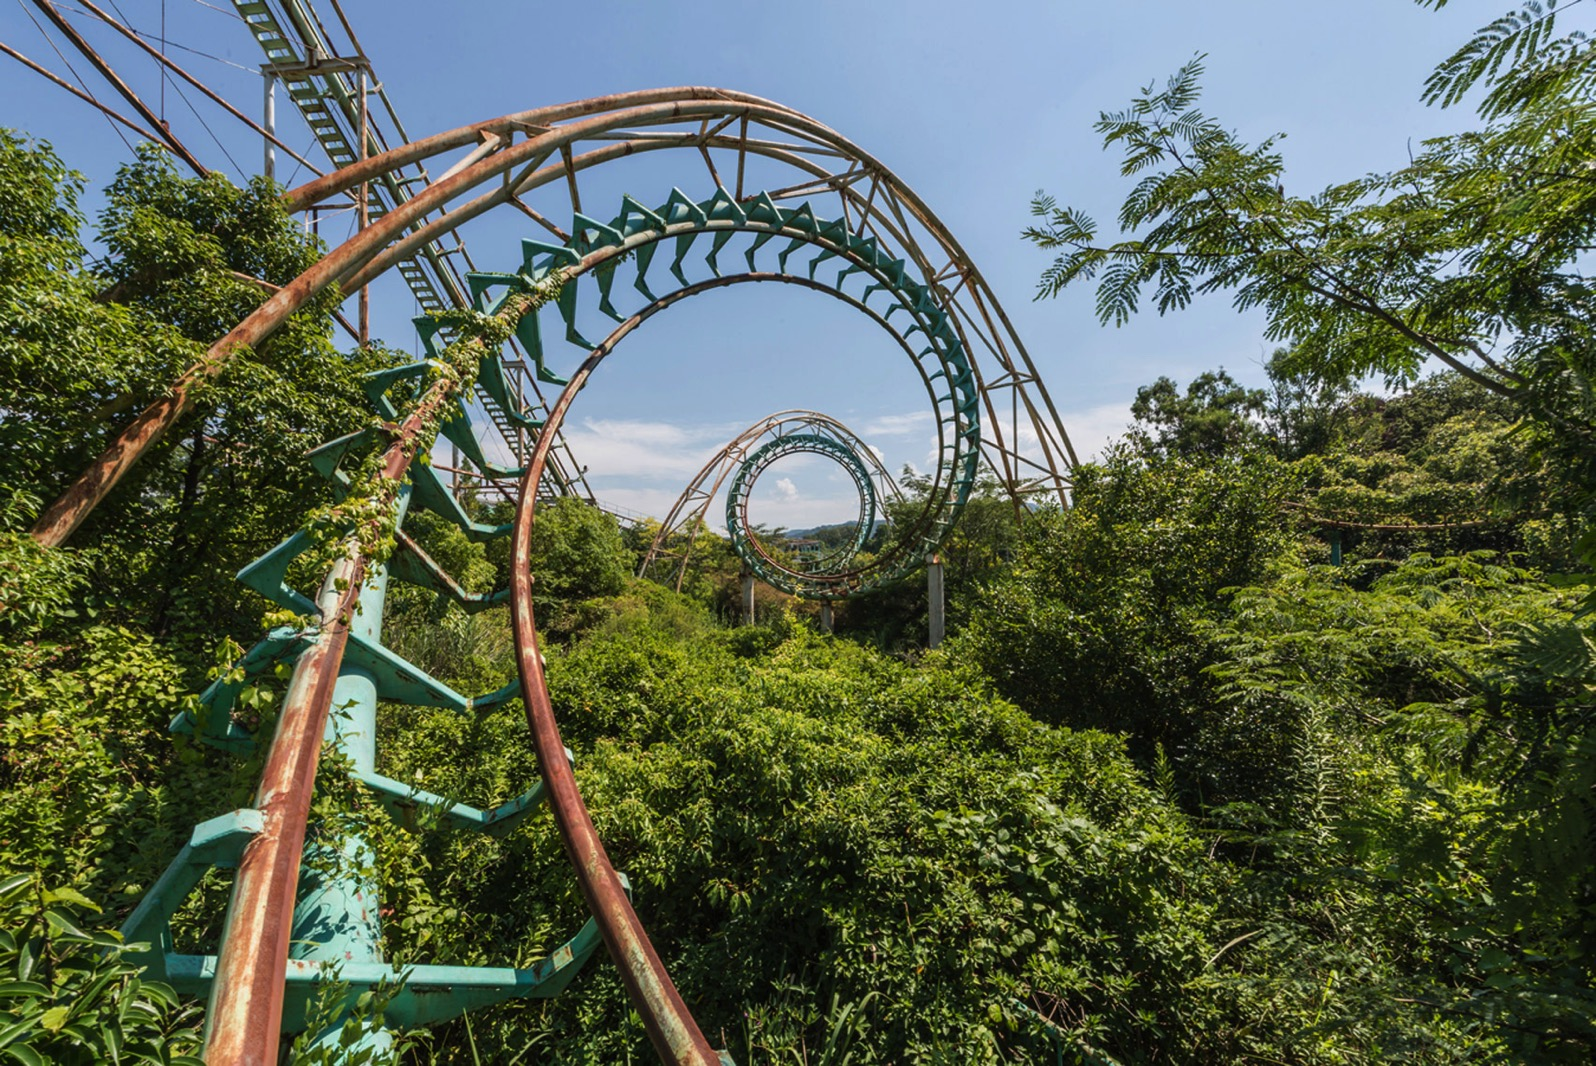 Nara dreamland romain veillon architecture theme park photography dezeen 1704 col 3